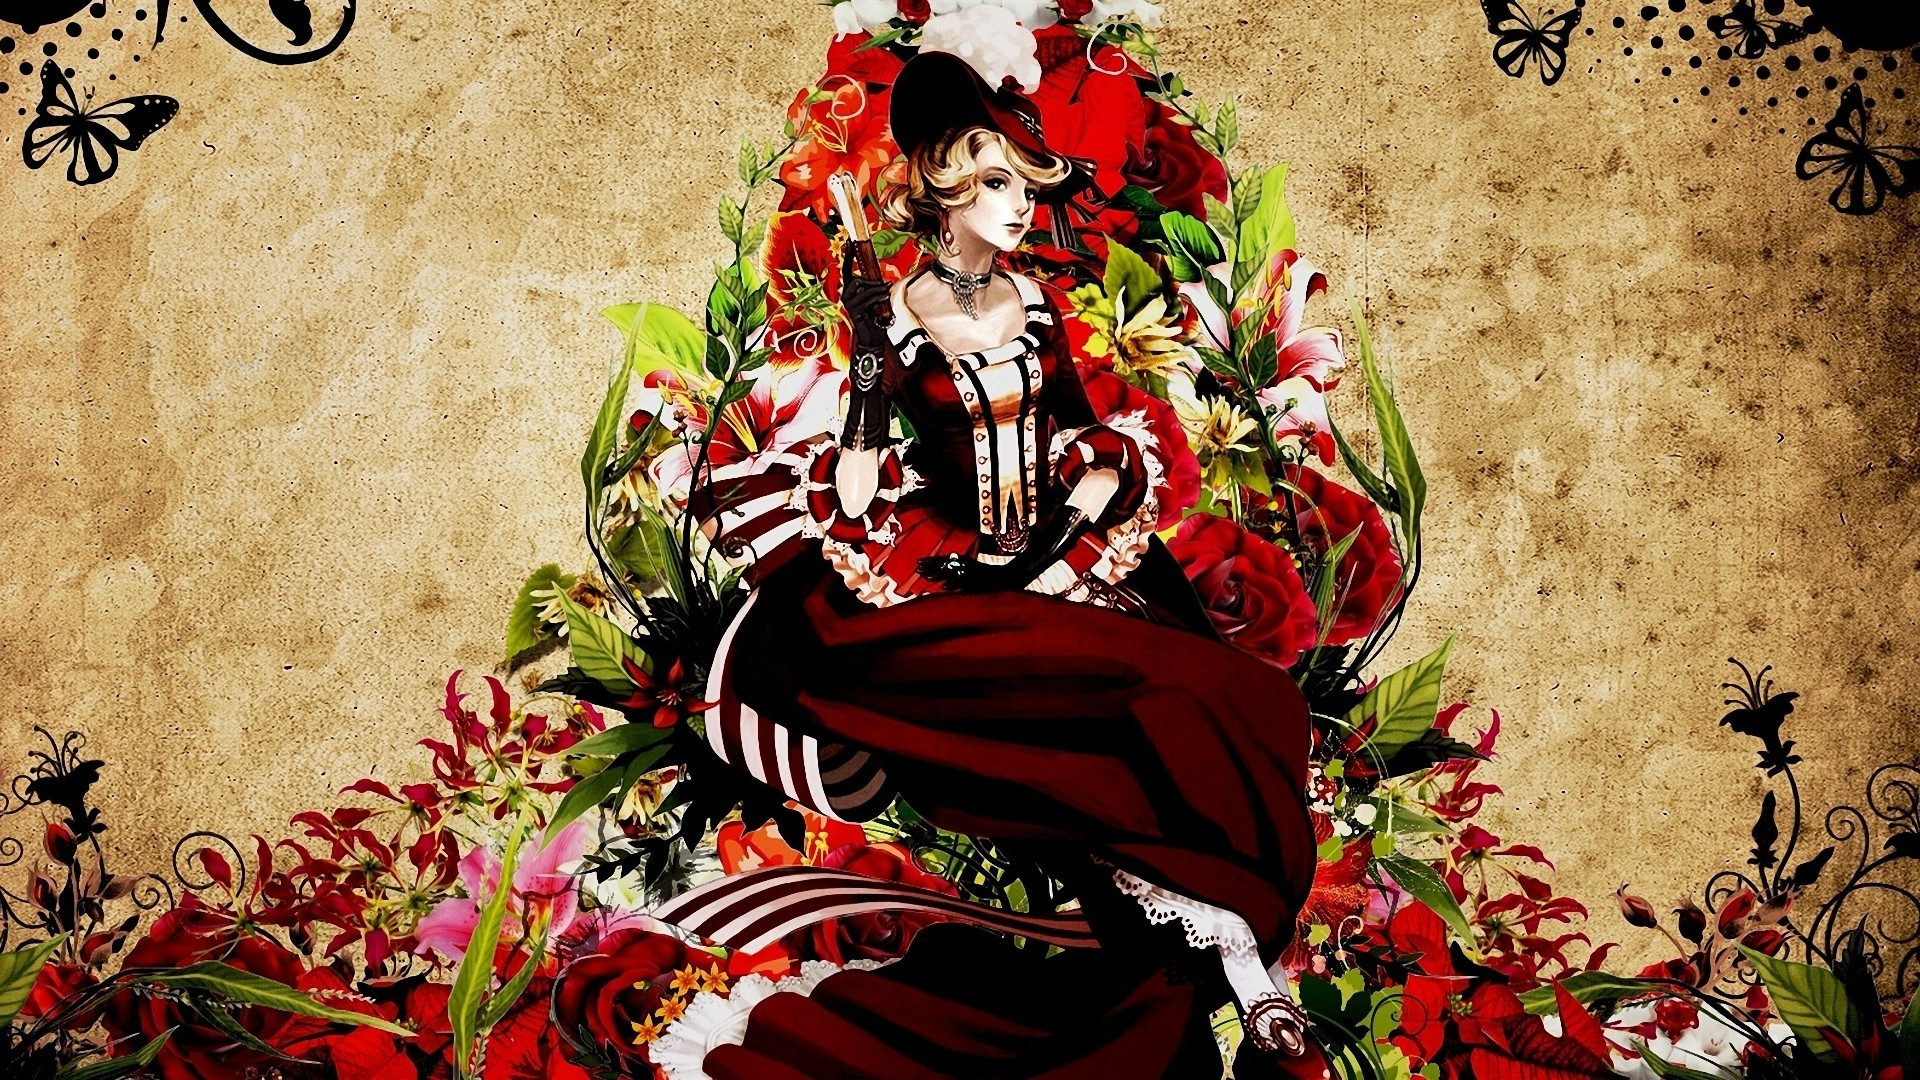 dress Flowers patterns steampunk HD Wallpaper